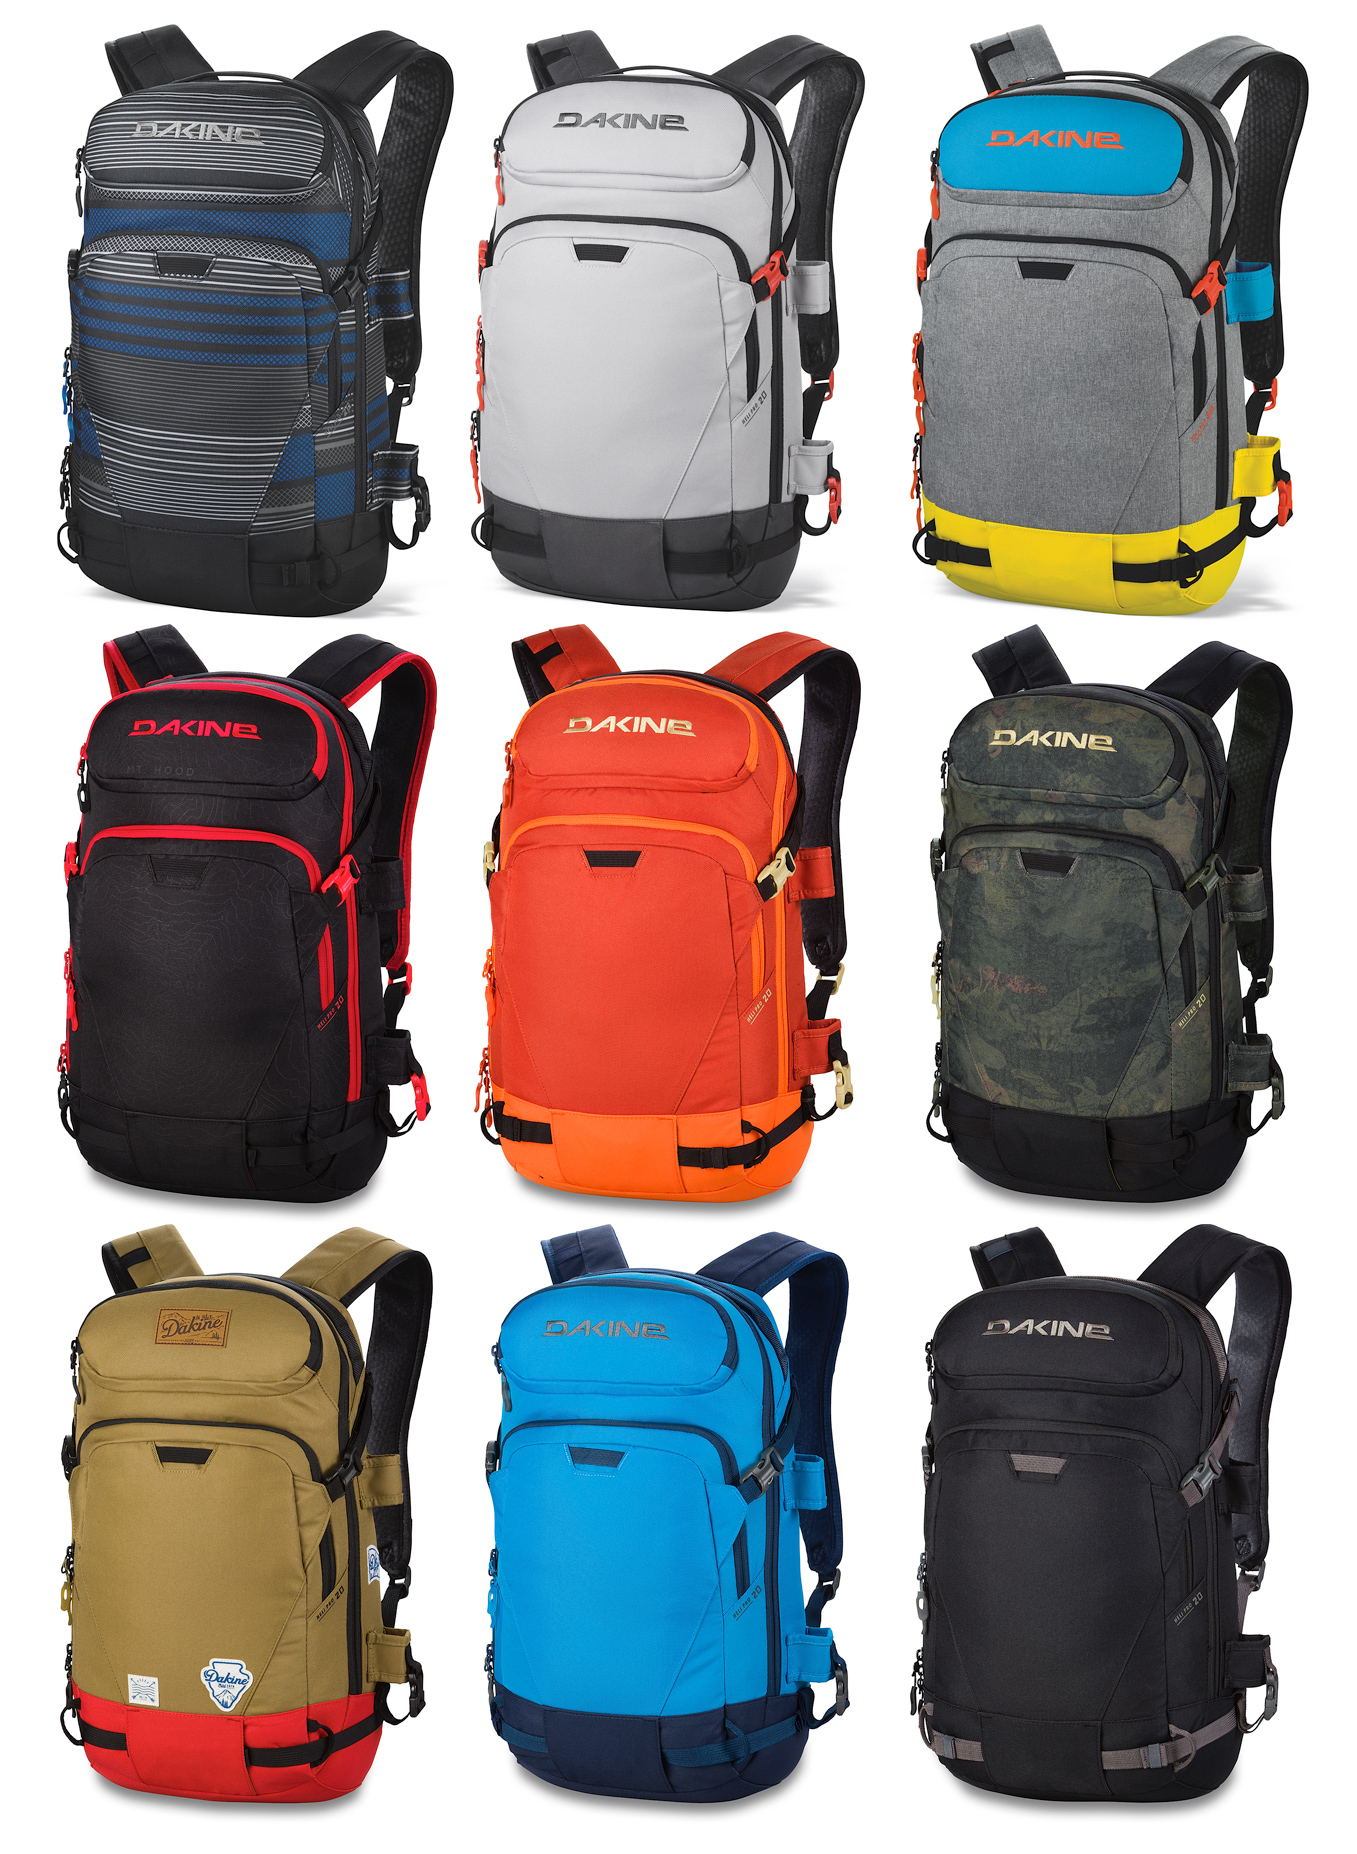 Dakine Heli Pro 20L Backpack - Crazy Backpacks